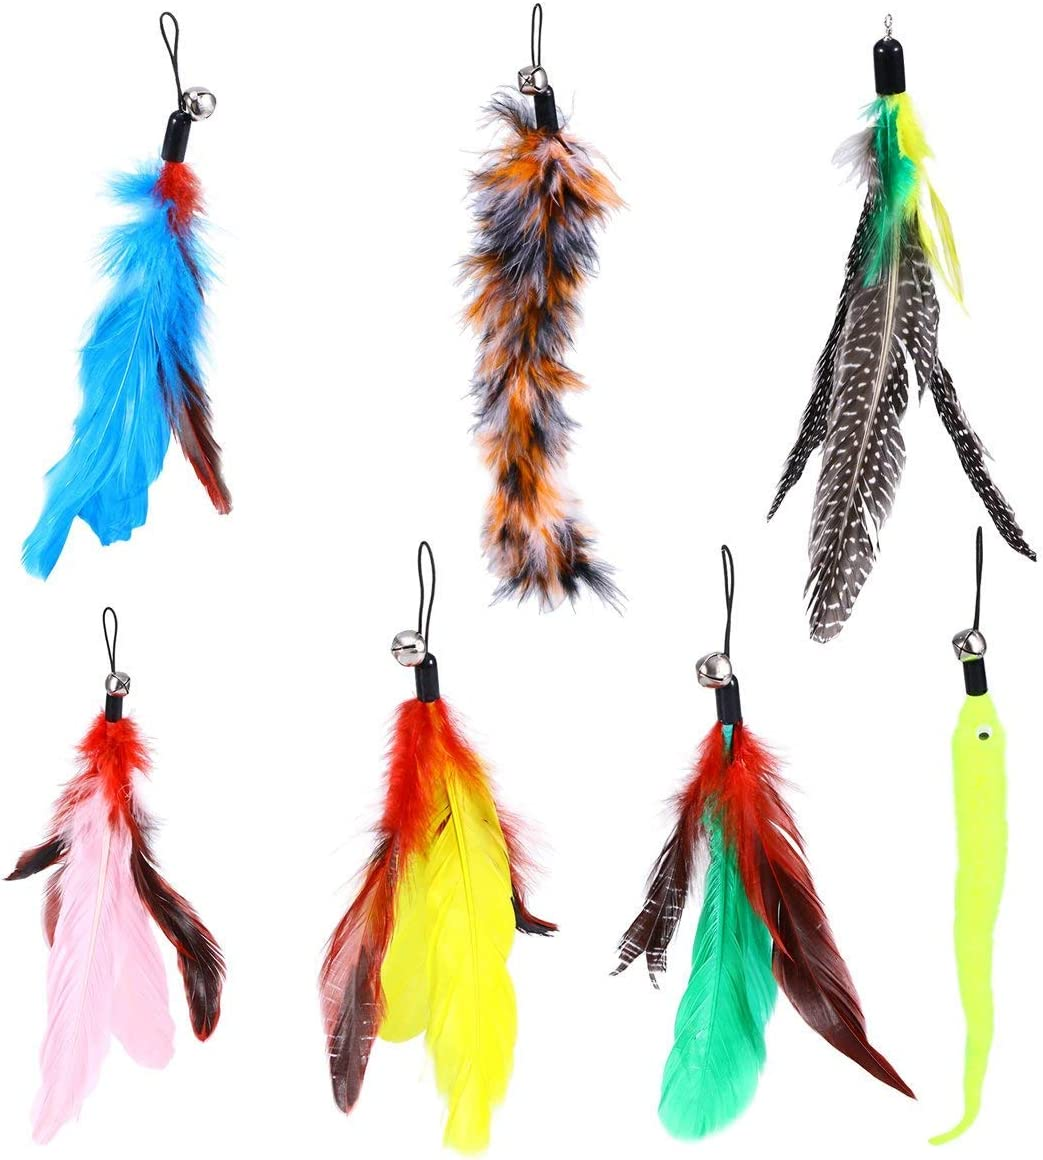 yiqi Retractable Cat Toys Interactive Feather Teaser Wand Toy with 7 Refills Feathers Birds Worms Catcher for Cats Kitten